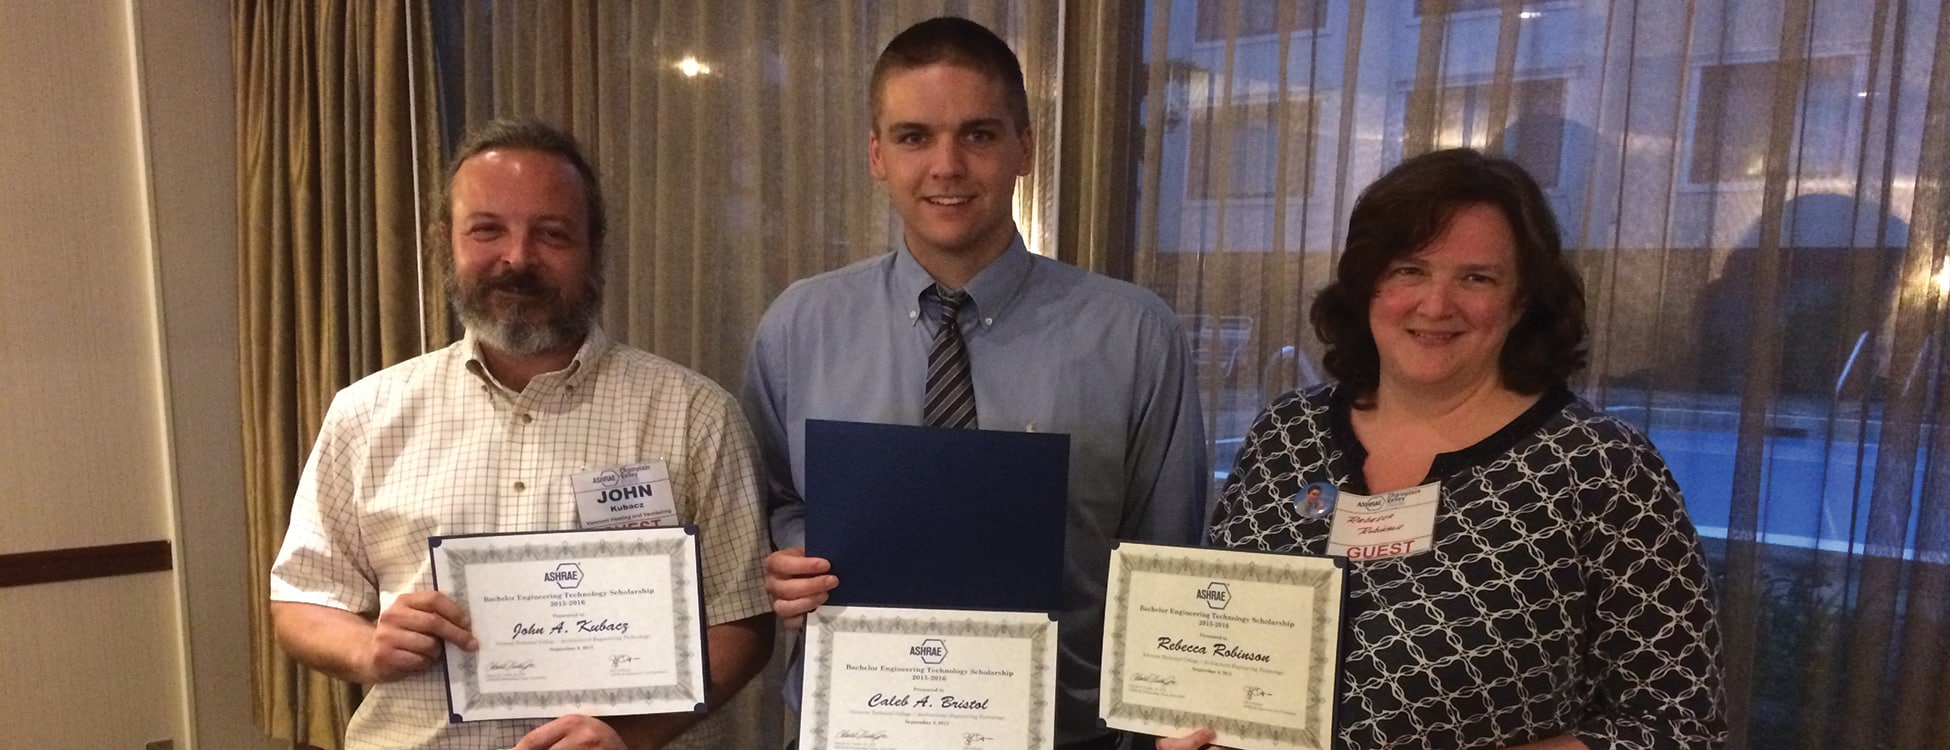 architectural engineering technology, student winners, ASHRAE